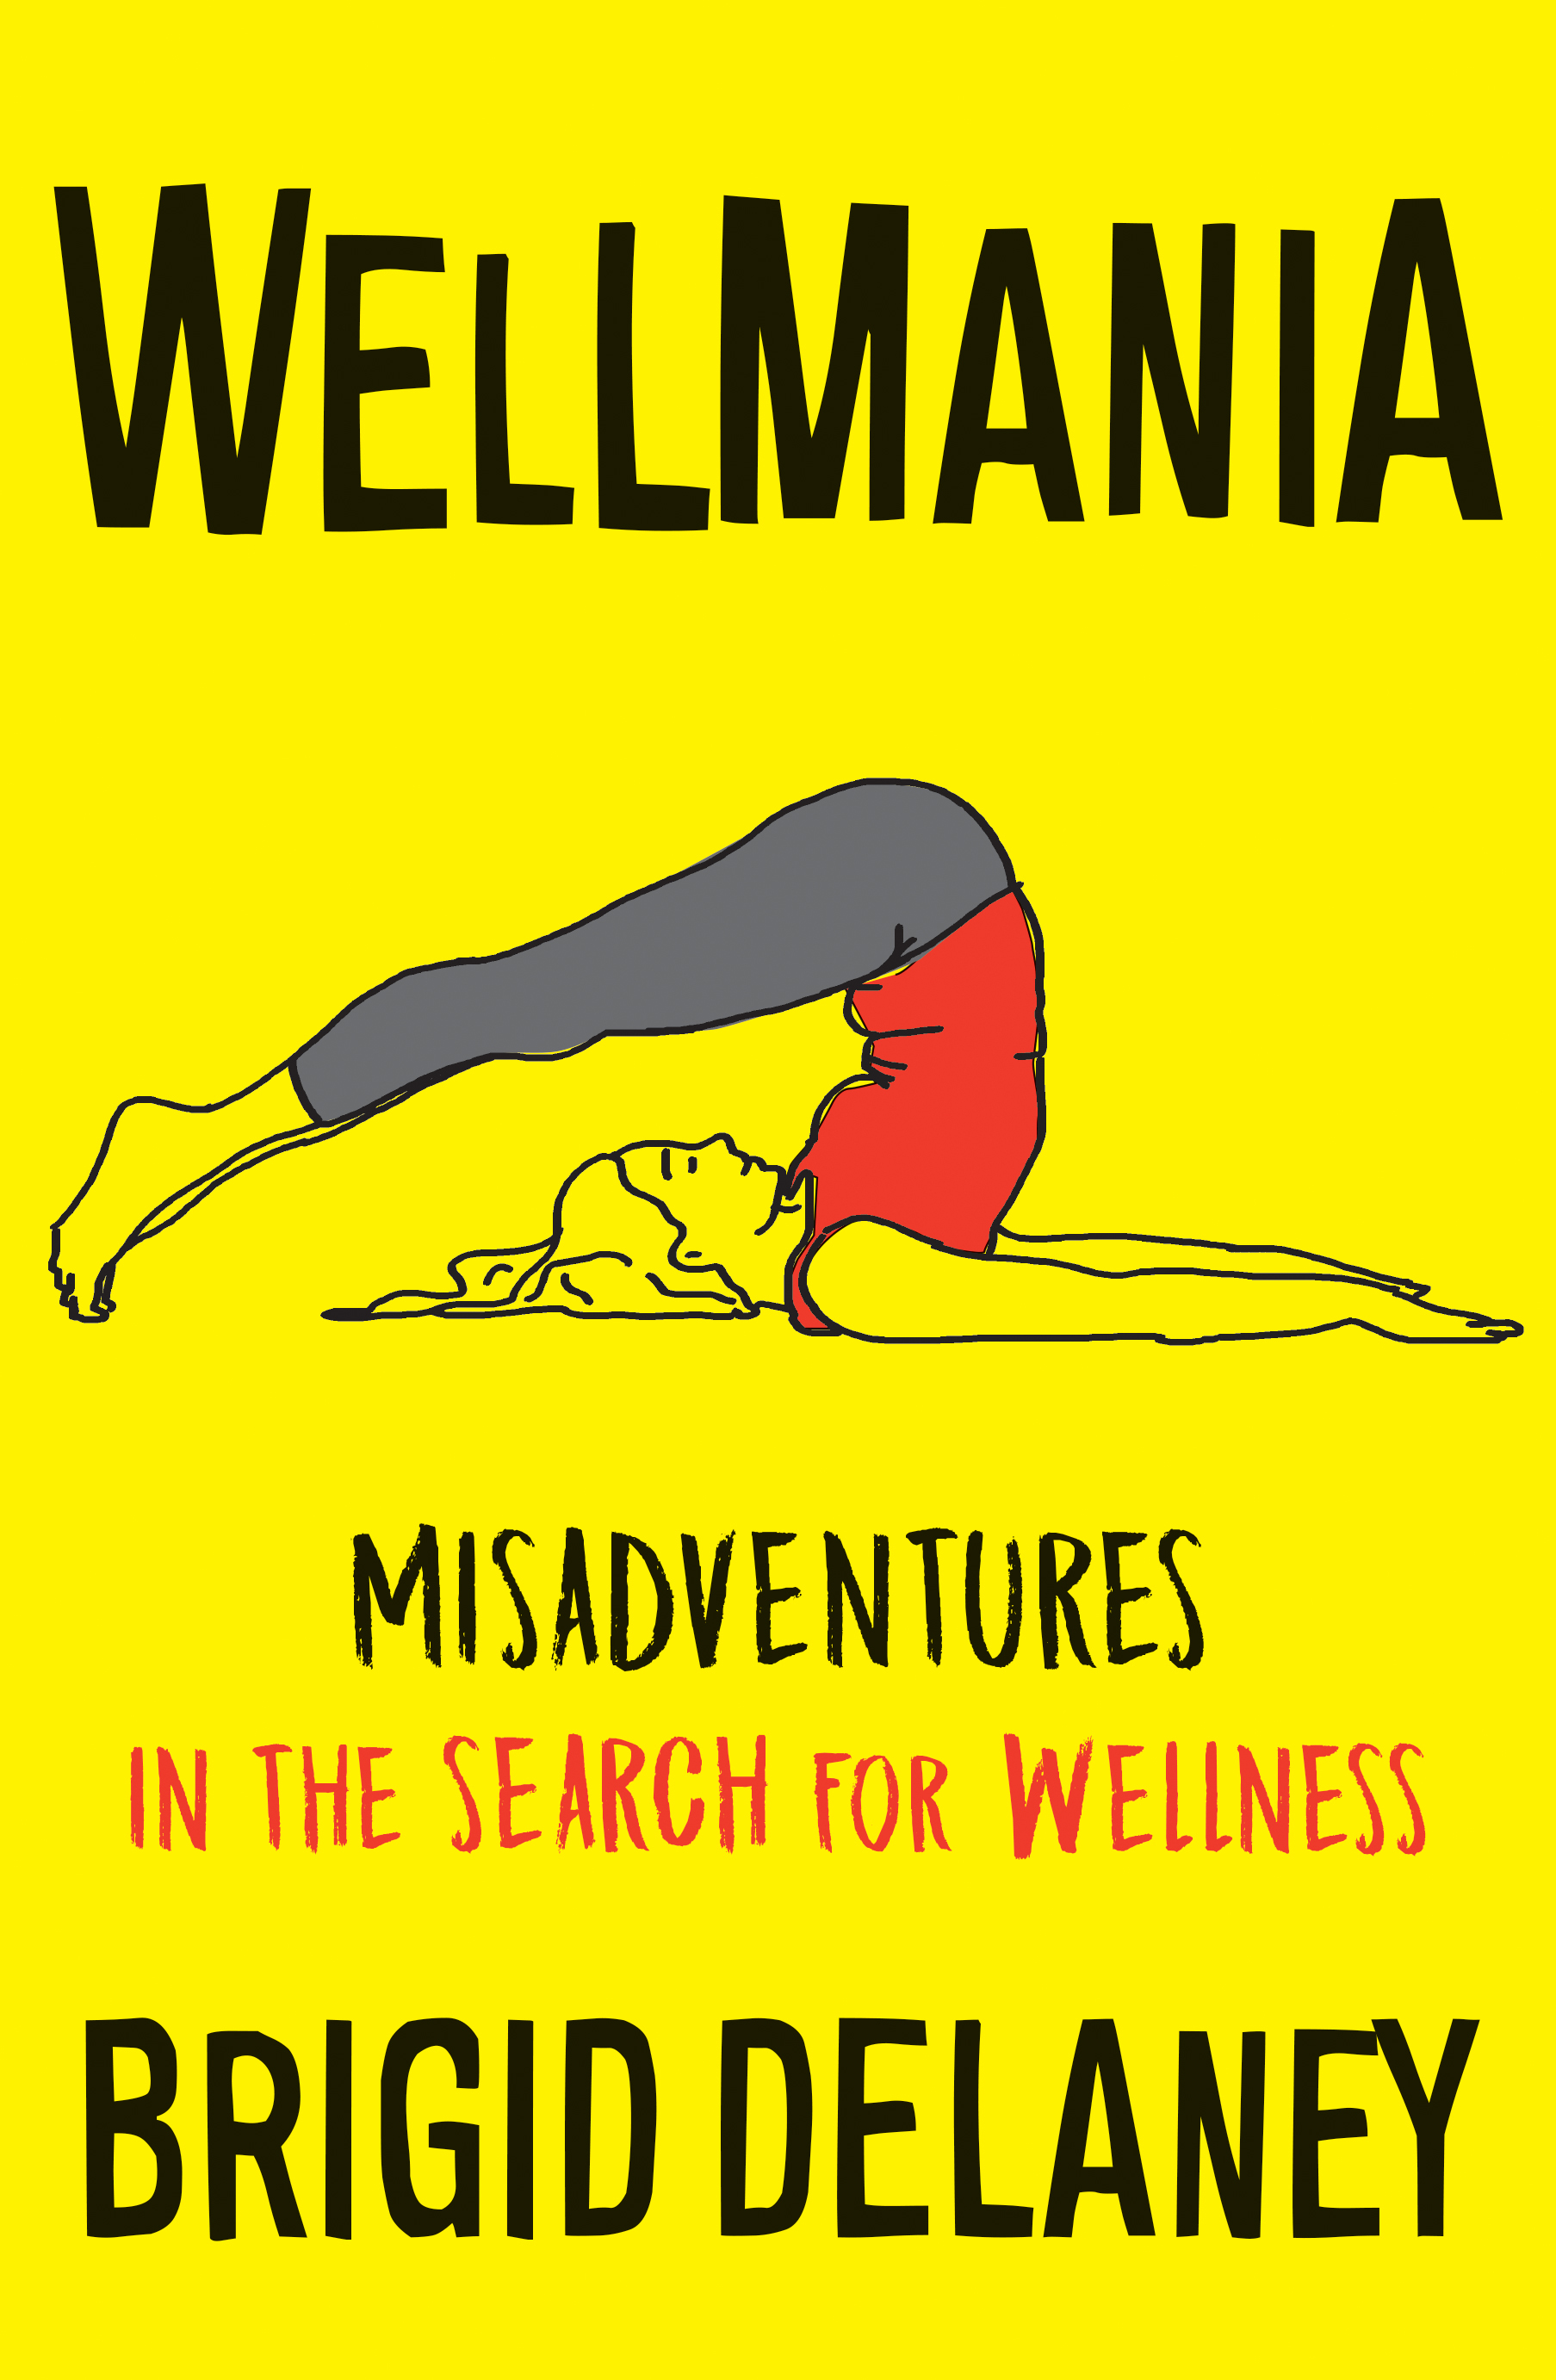 Wellmania Misadventures in the Search for Wellness